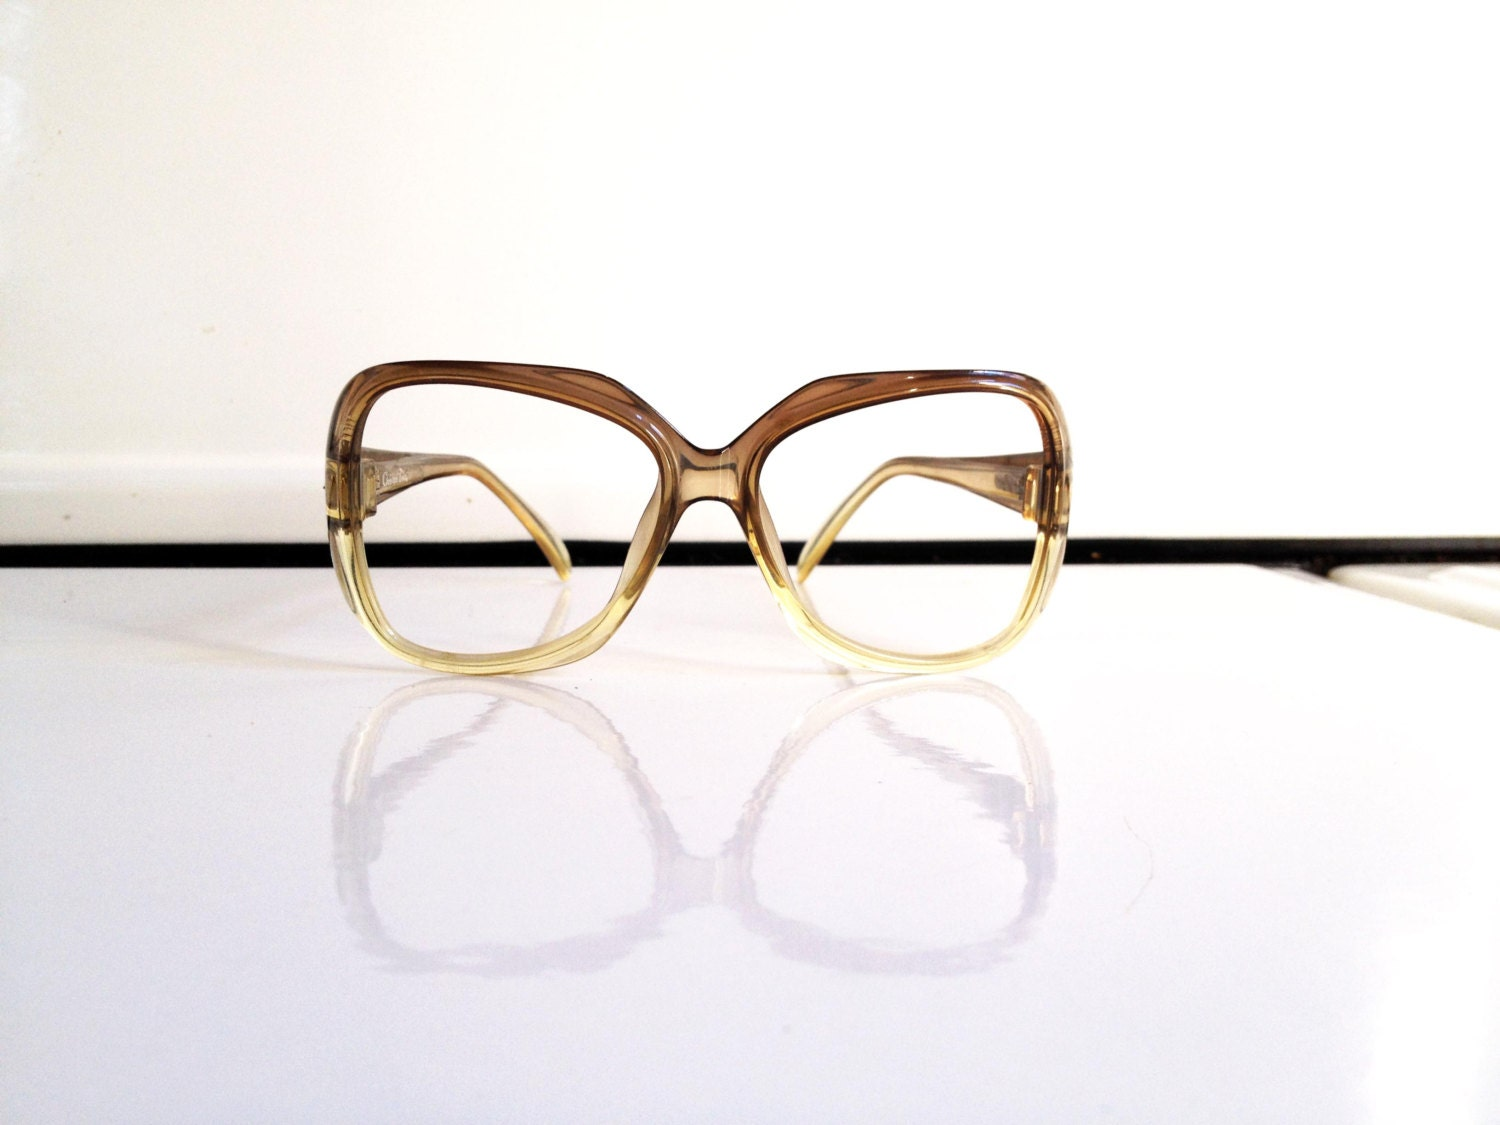 Dior Glasses  Buy Online at VisionDirect Australia